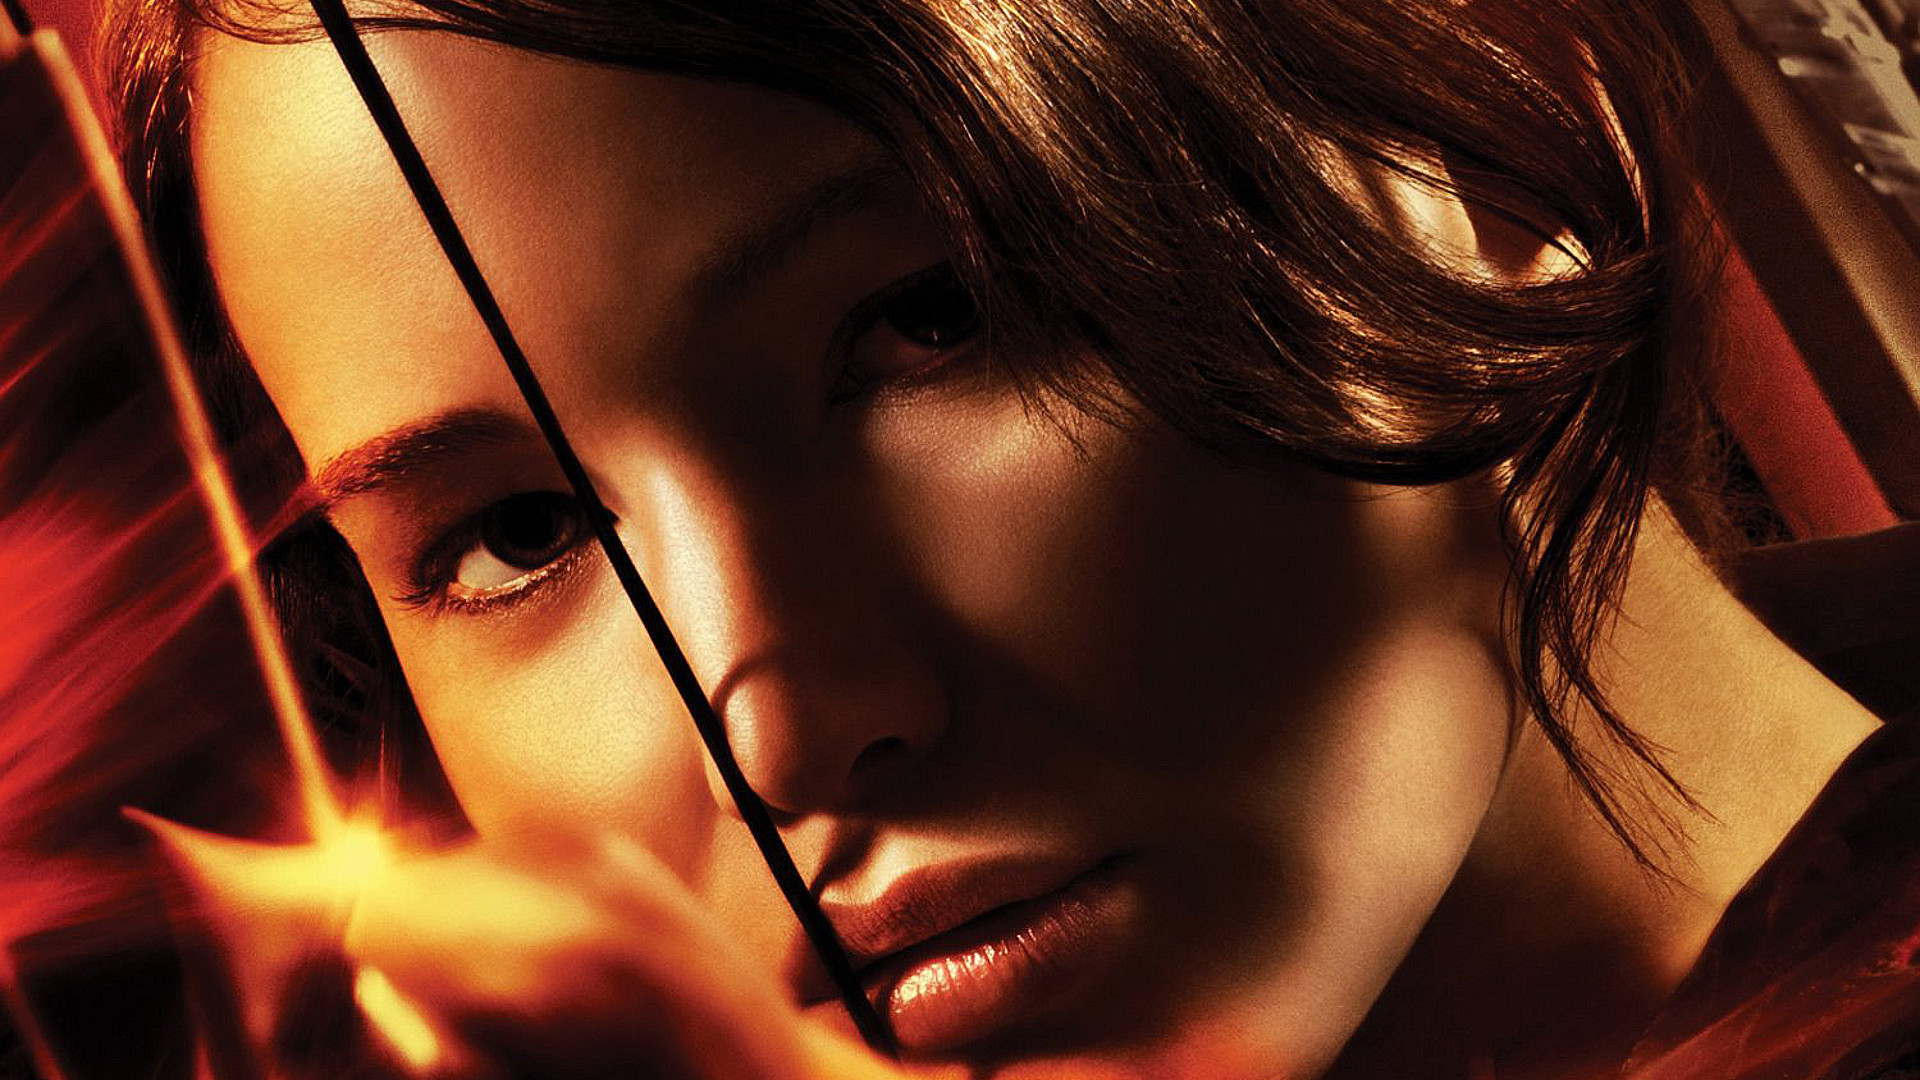 Jennifer Lawrence in Hunger Games Wallpapers   HD Wallpapers